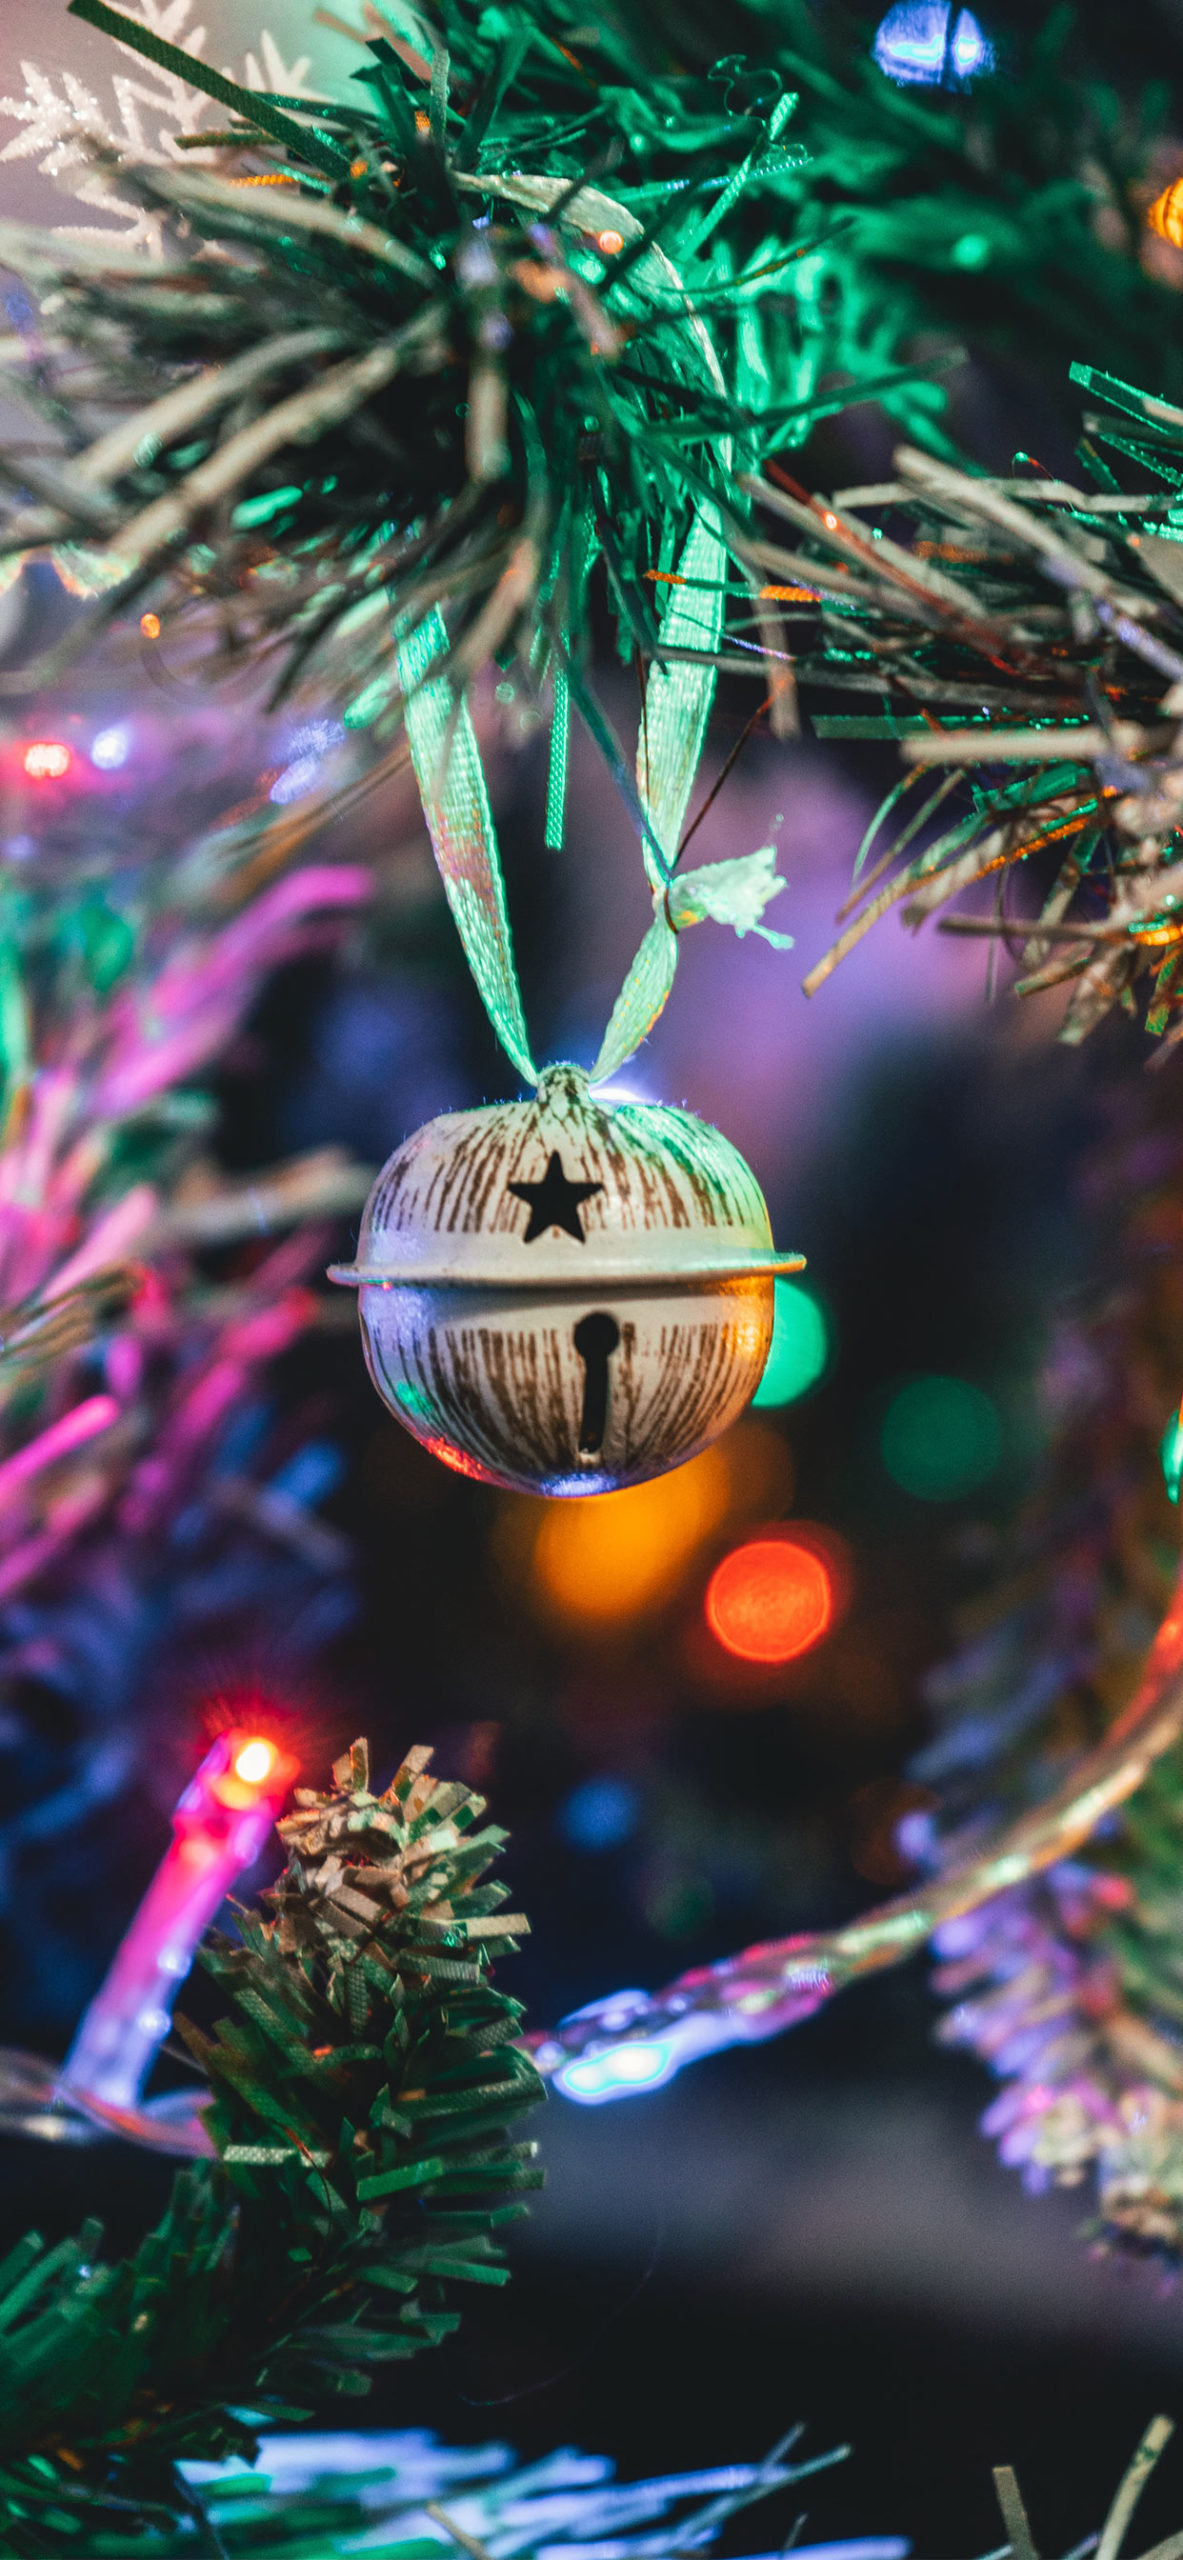 iphone wallpapers ball1 scaled Christmas balls